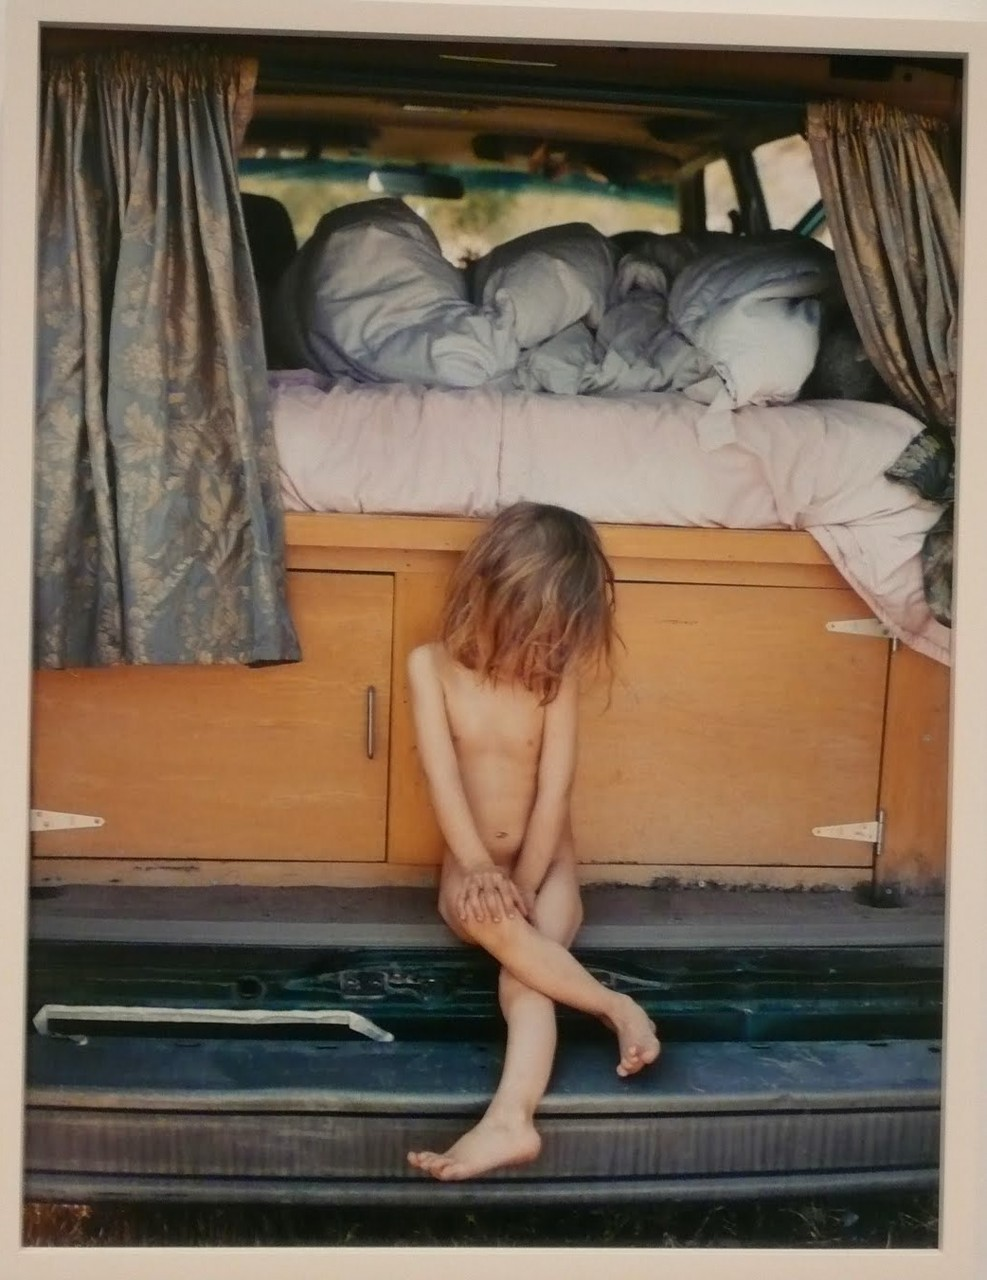 Casper. Justine Kurland is one of our heroes.